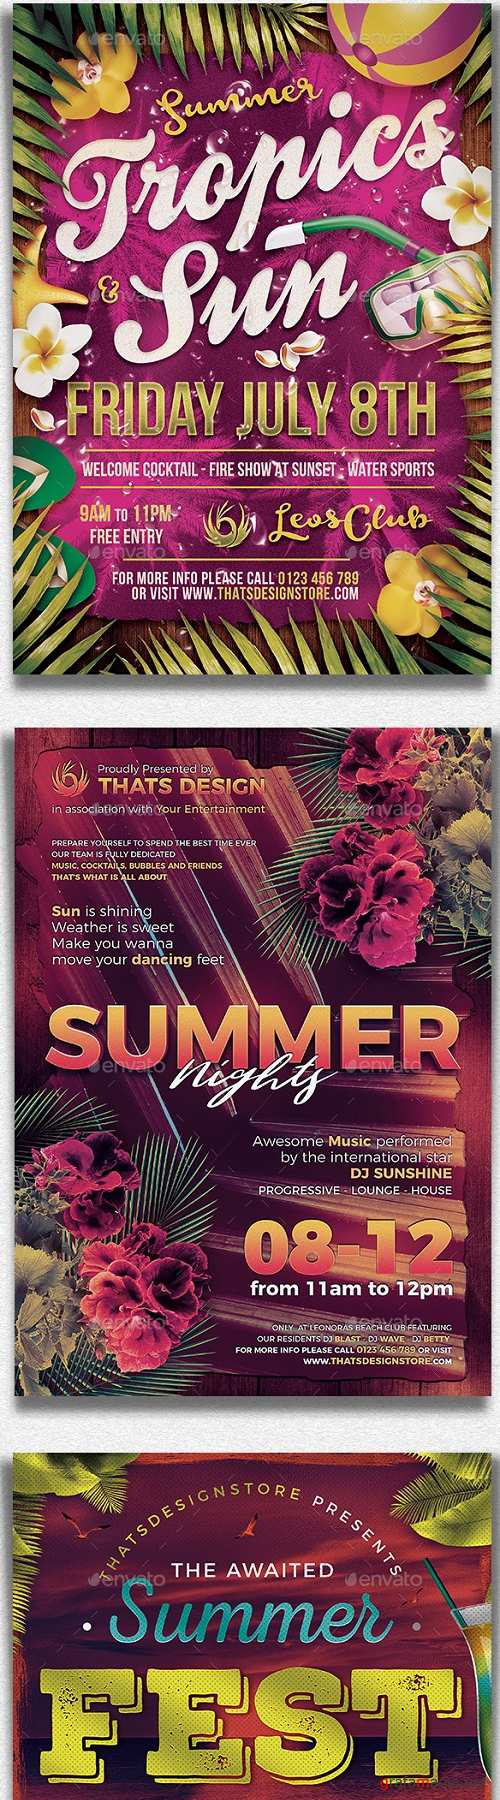 Summer Fun Flyer Bundle - 19900437 - 1479554